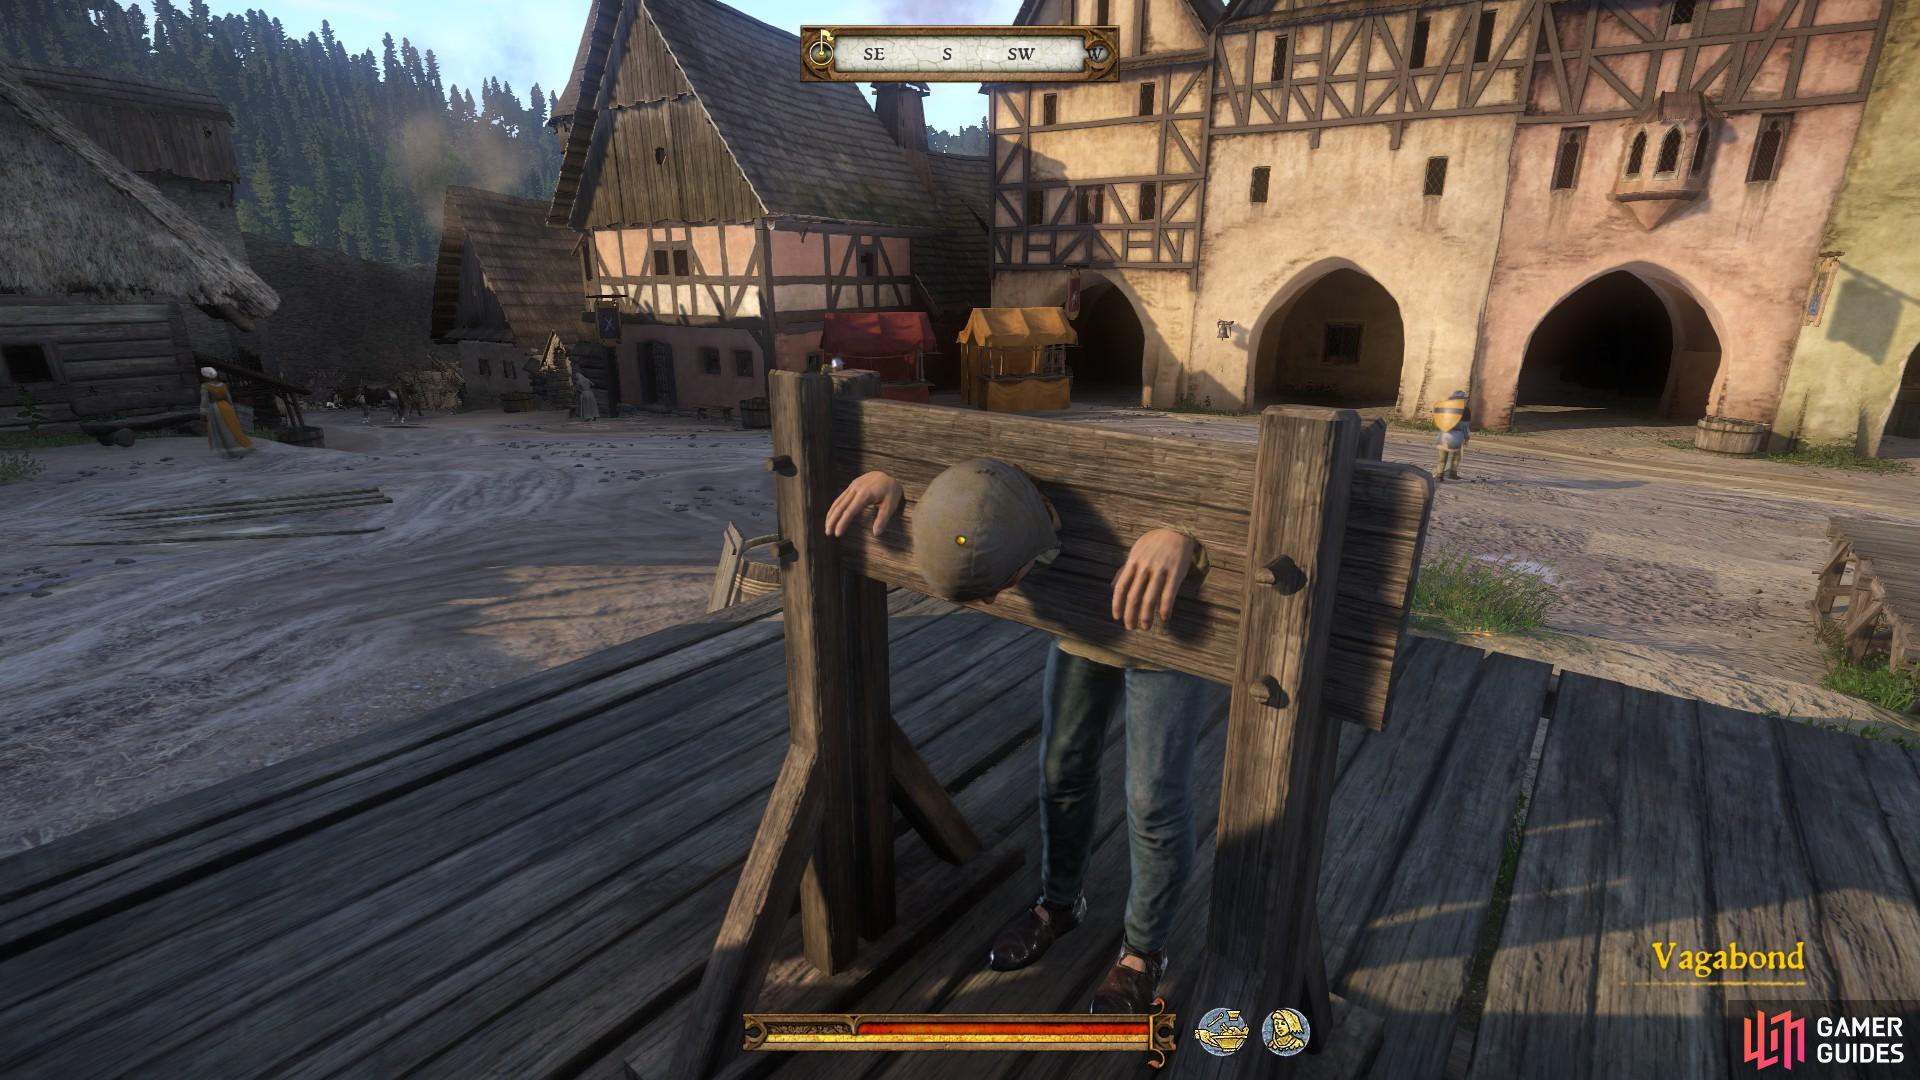 When you return to Rattay, you will find the Vagabond arrested in a pillory. You can speak to him, but he will not be able to reward you.